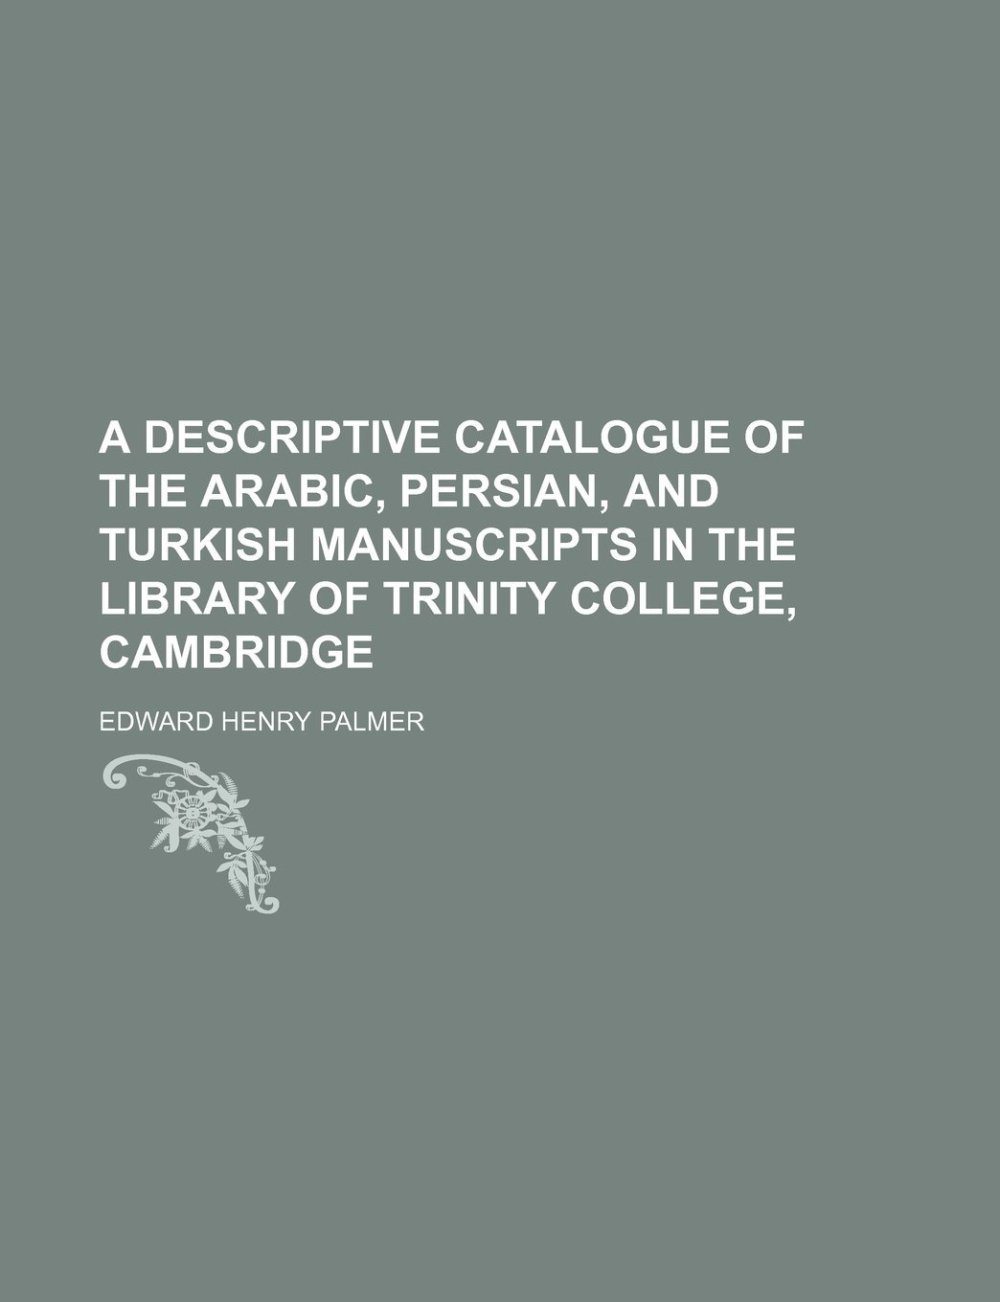 A Descriptive Catalogue of the Arabic, Persian, And Turkish Manuscripts in the Library of Trinity College, Cambridge